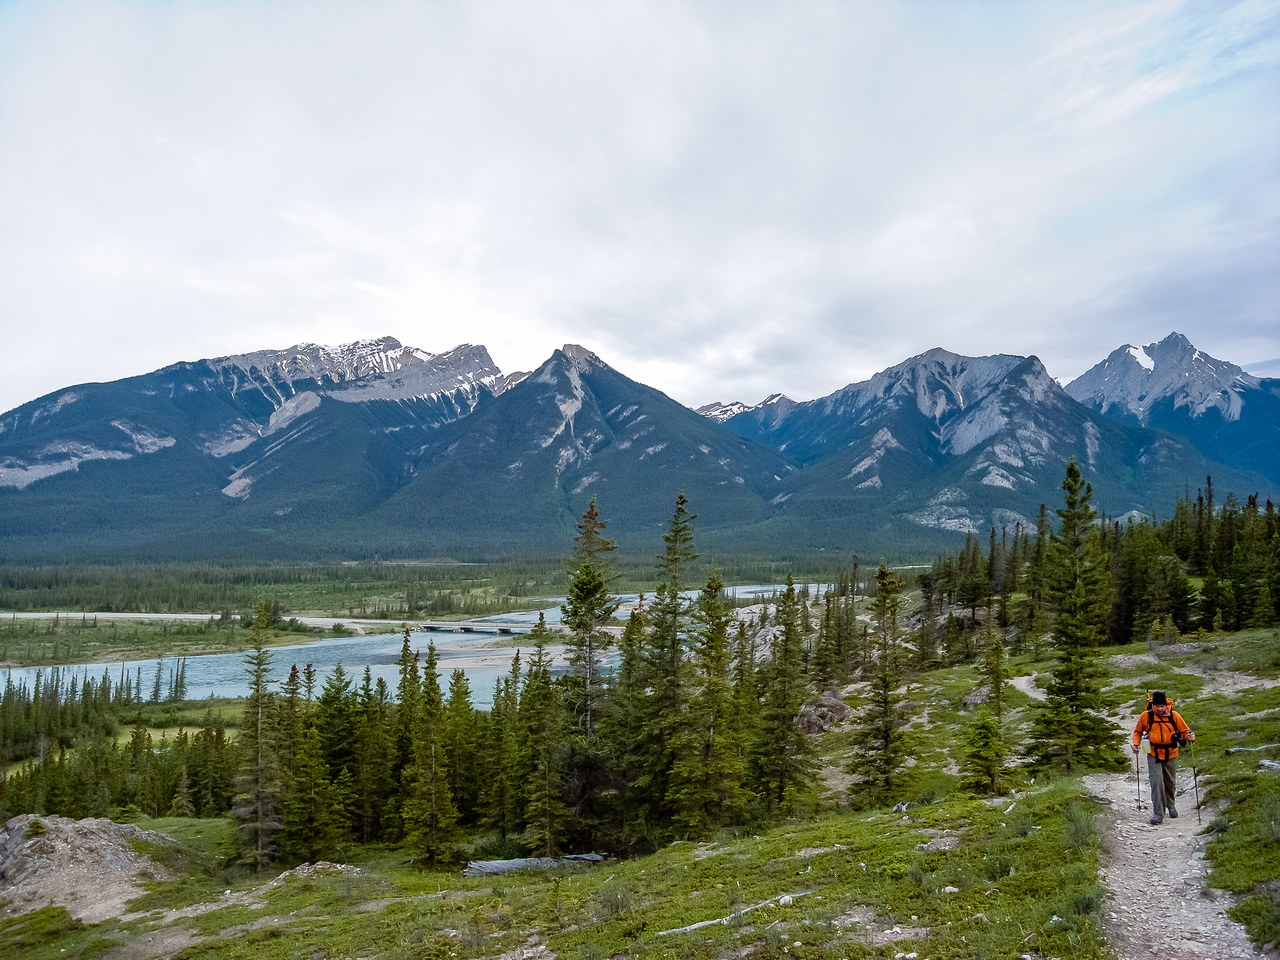 Looking back at Wietse on the very well traveled Overlander Trail with the Athabasca River at left.